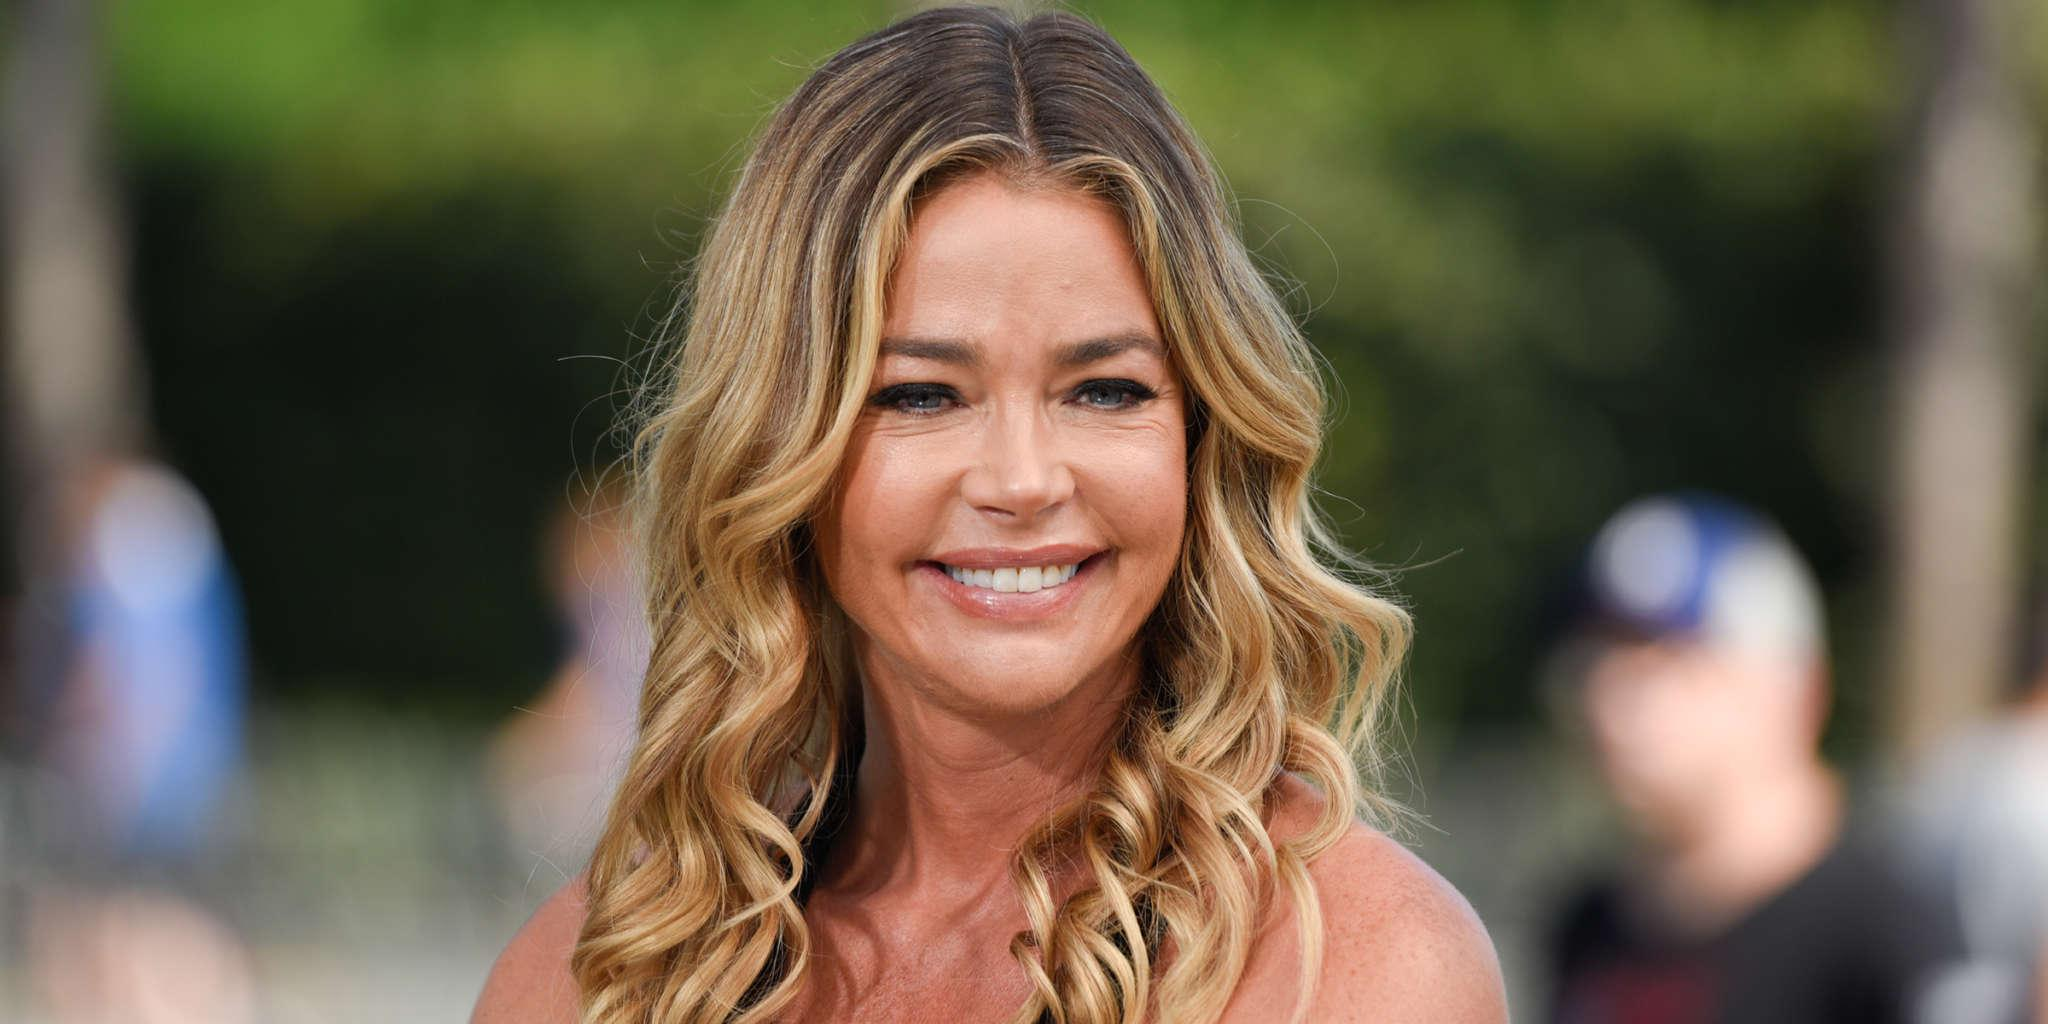 Denise Richards Denies The Reports That She's Too Busy With Acting To Be On RHOBH Full-Time!